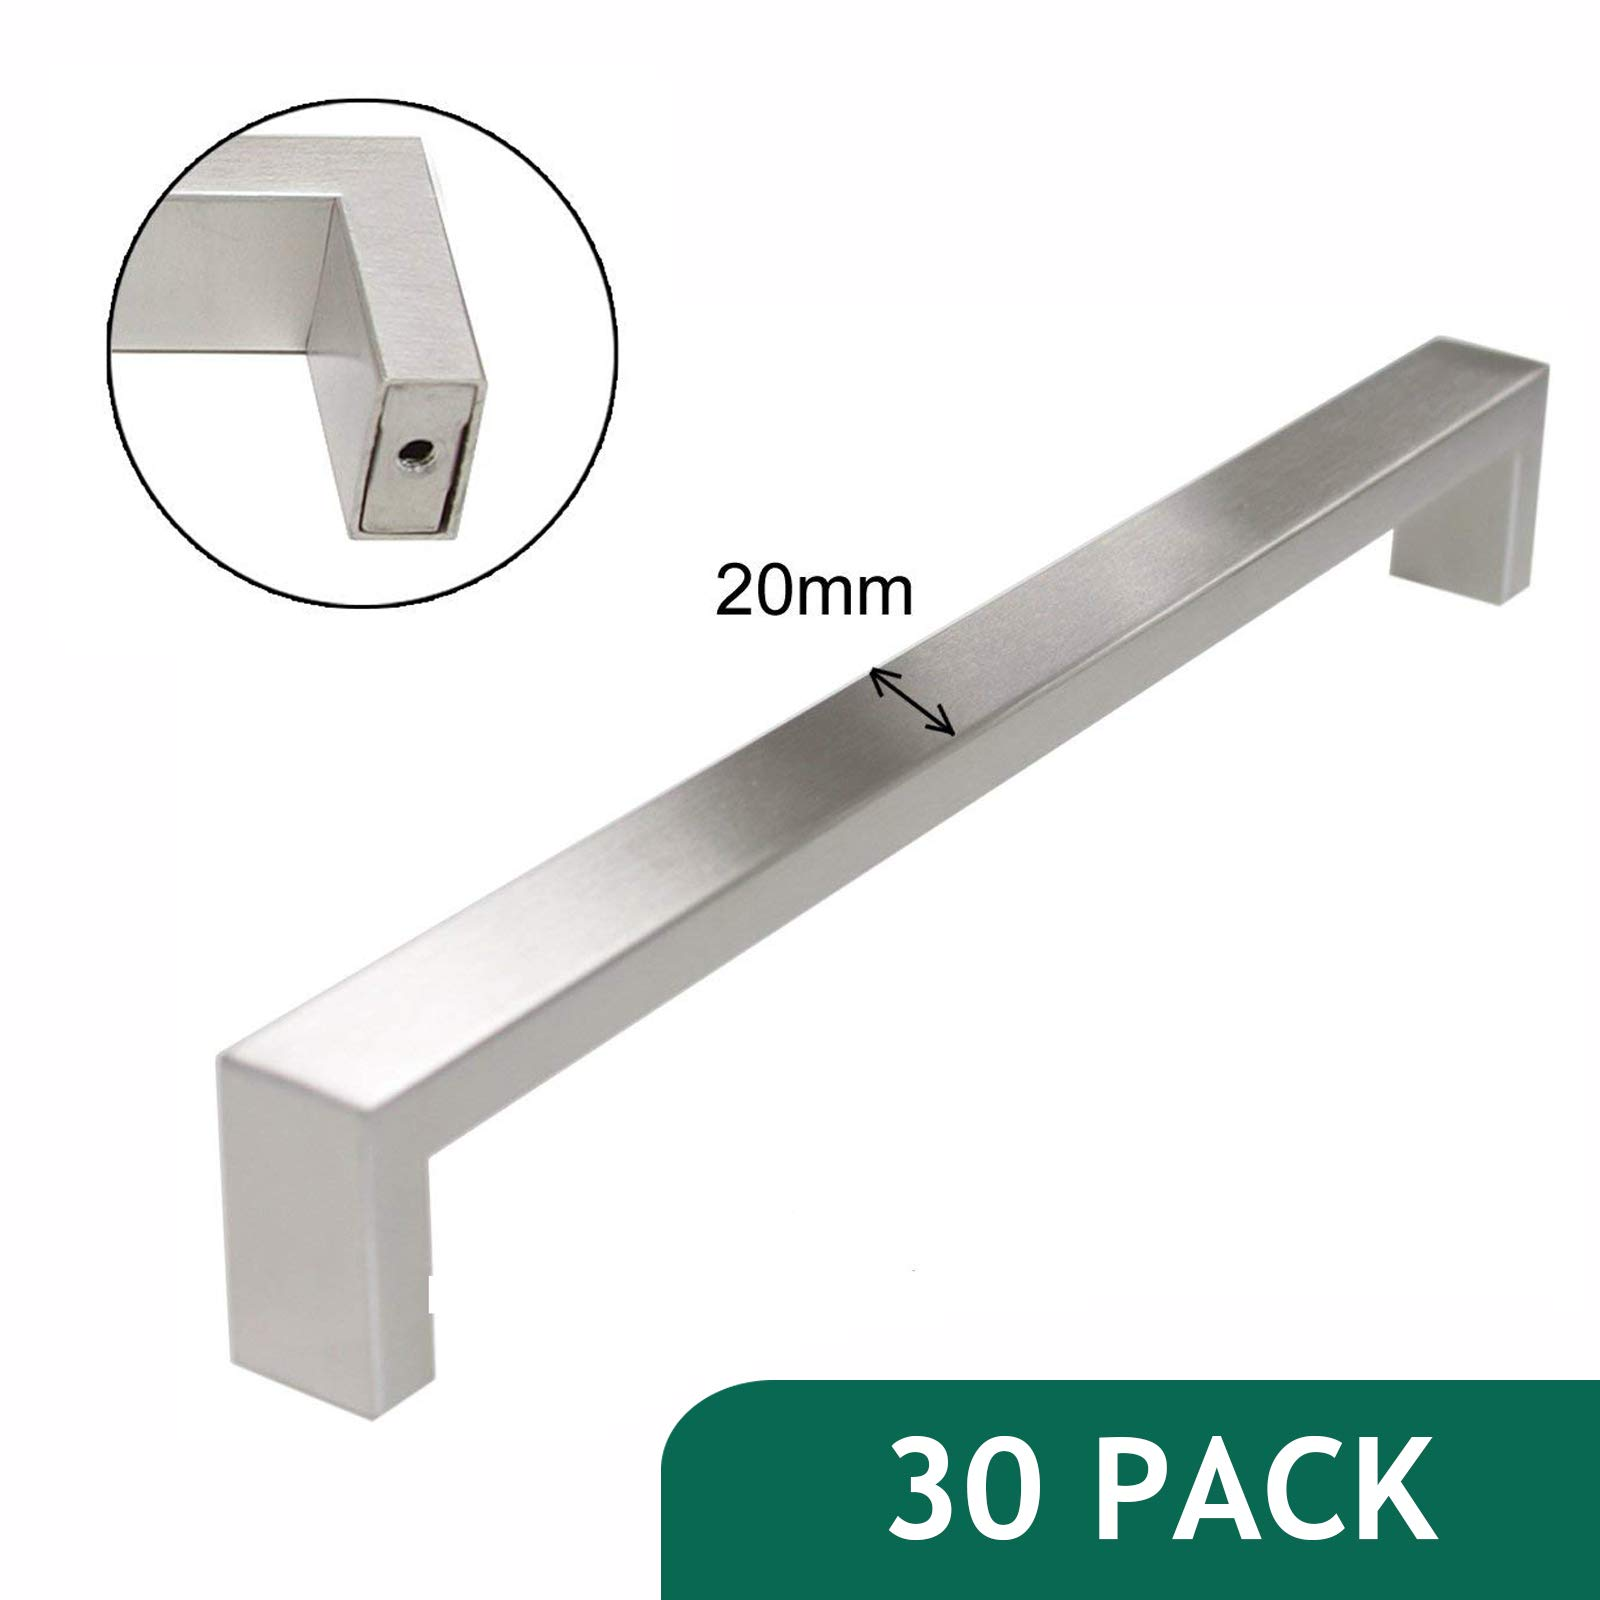 30 Pack-Probrico Stainless Steel Furniture Drawer Pulls 10'' Hole Centres Long Cabinet Handles Brushed Nickel 10-1/5'' Overall Length